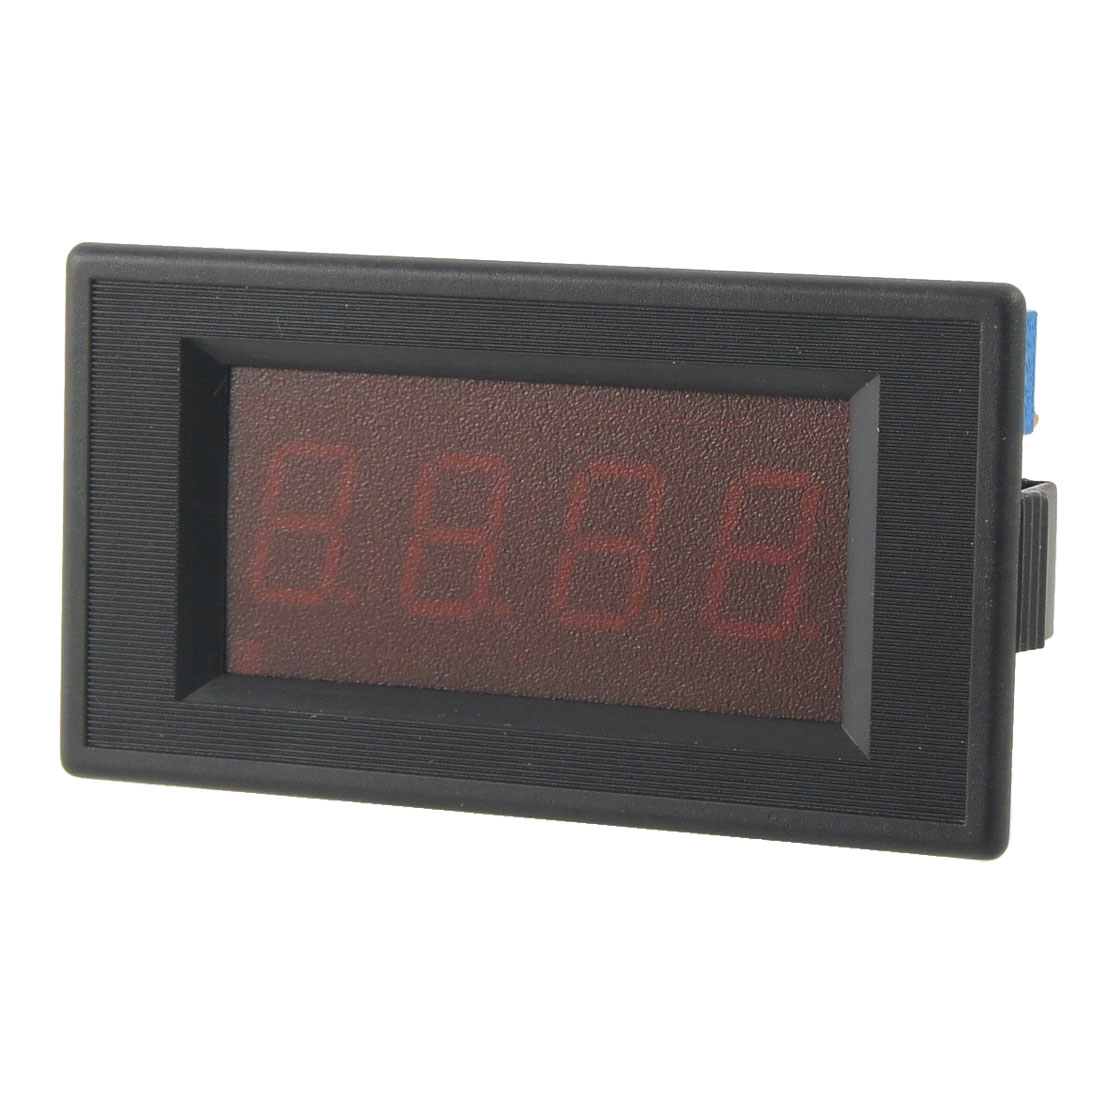 DC 0-10A 3 1/2 Digital Red LED Display Ammeter Ampere Panel Meter